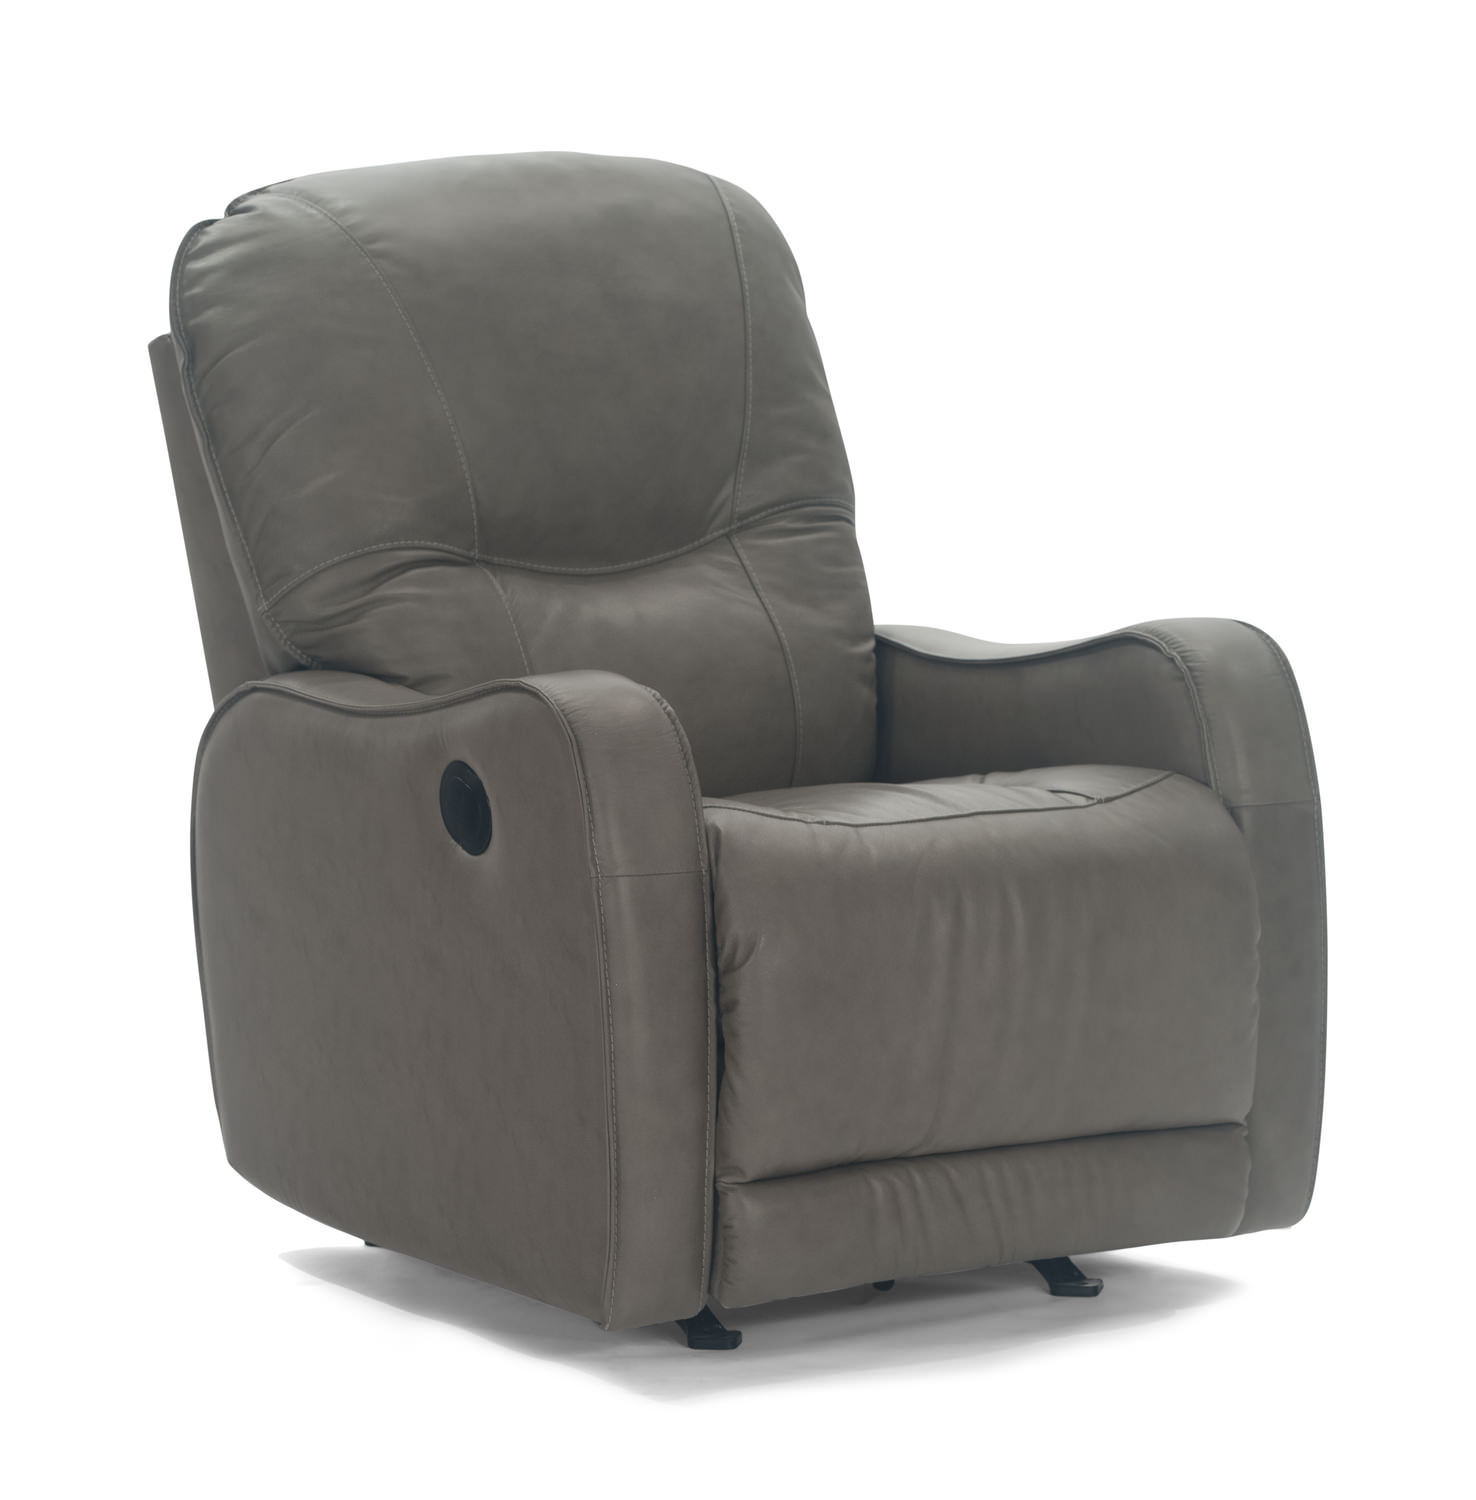 Yates Leather Power Rocker Recliner Hom Furniture